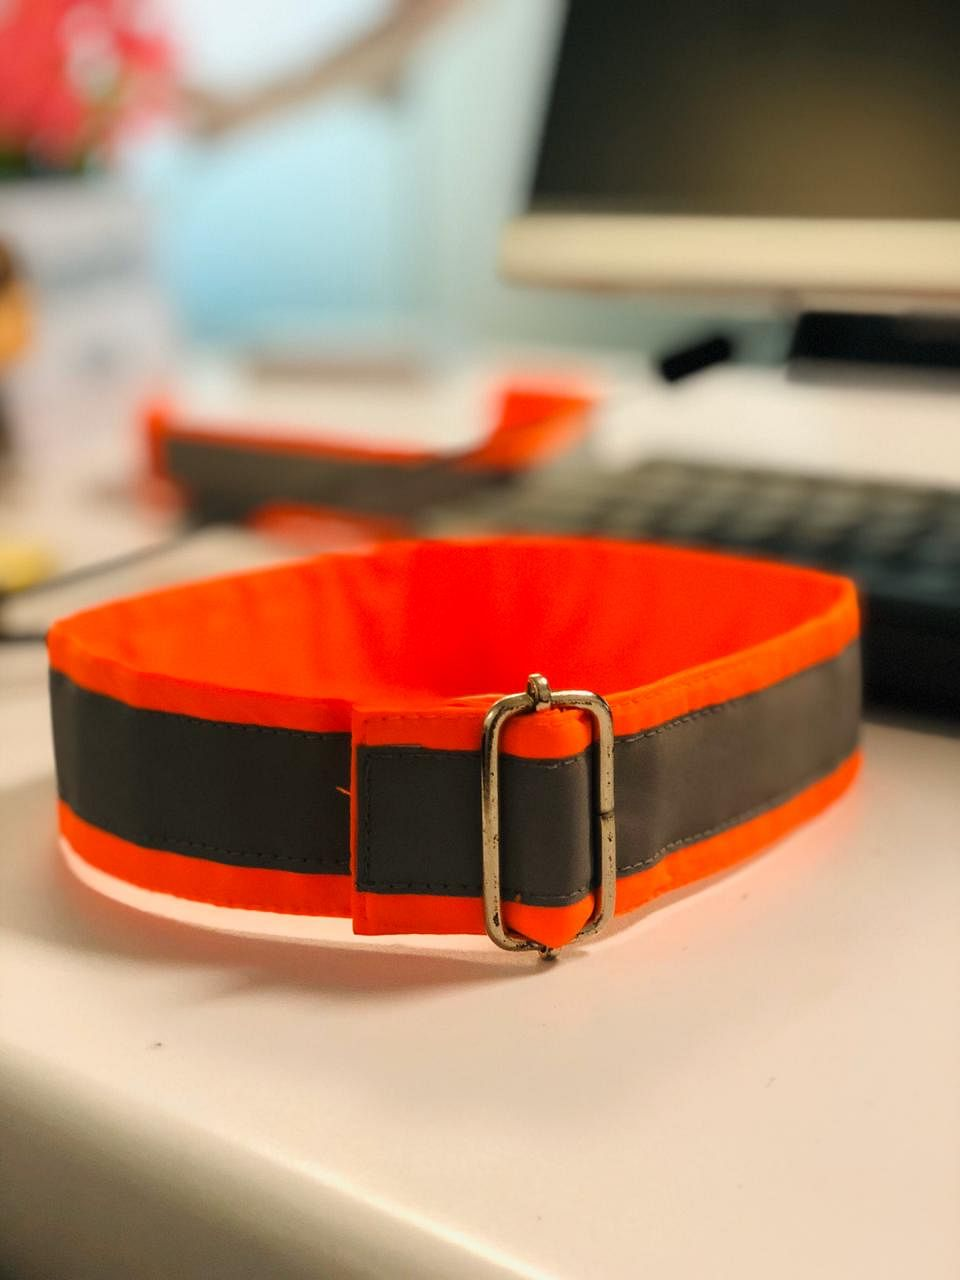 The new collar that Motopaws will launch on December 1. (Source: Shantanu Naidu)